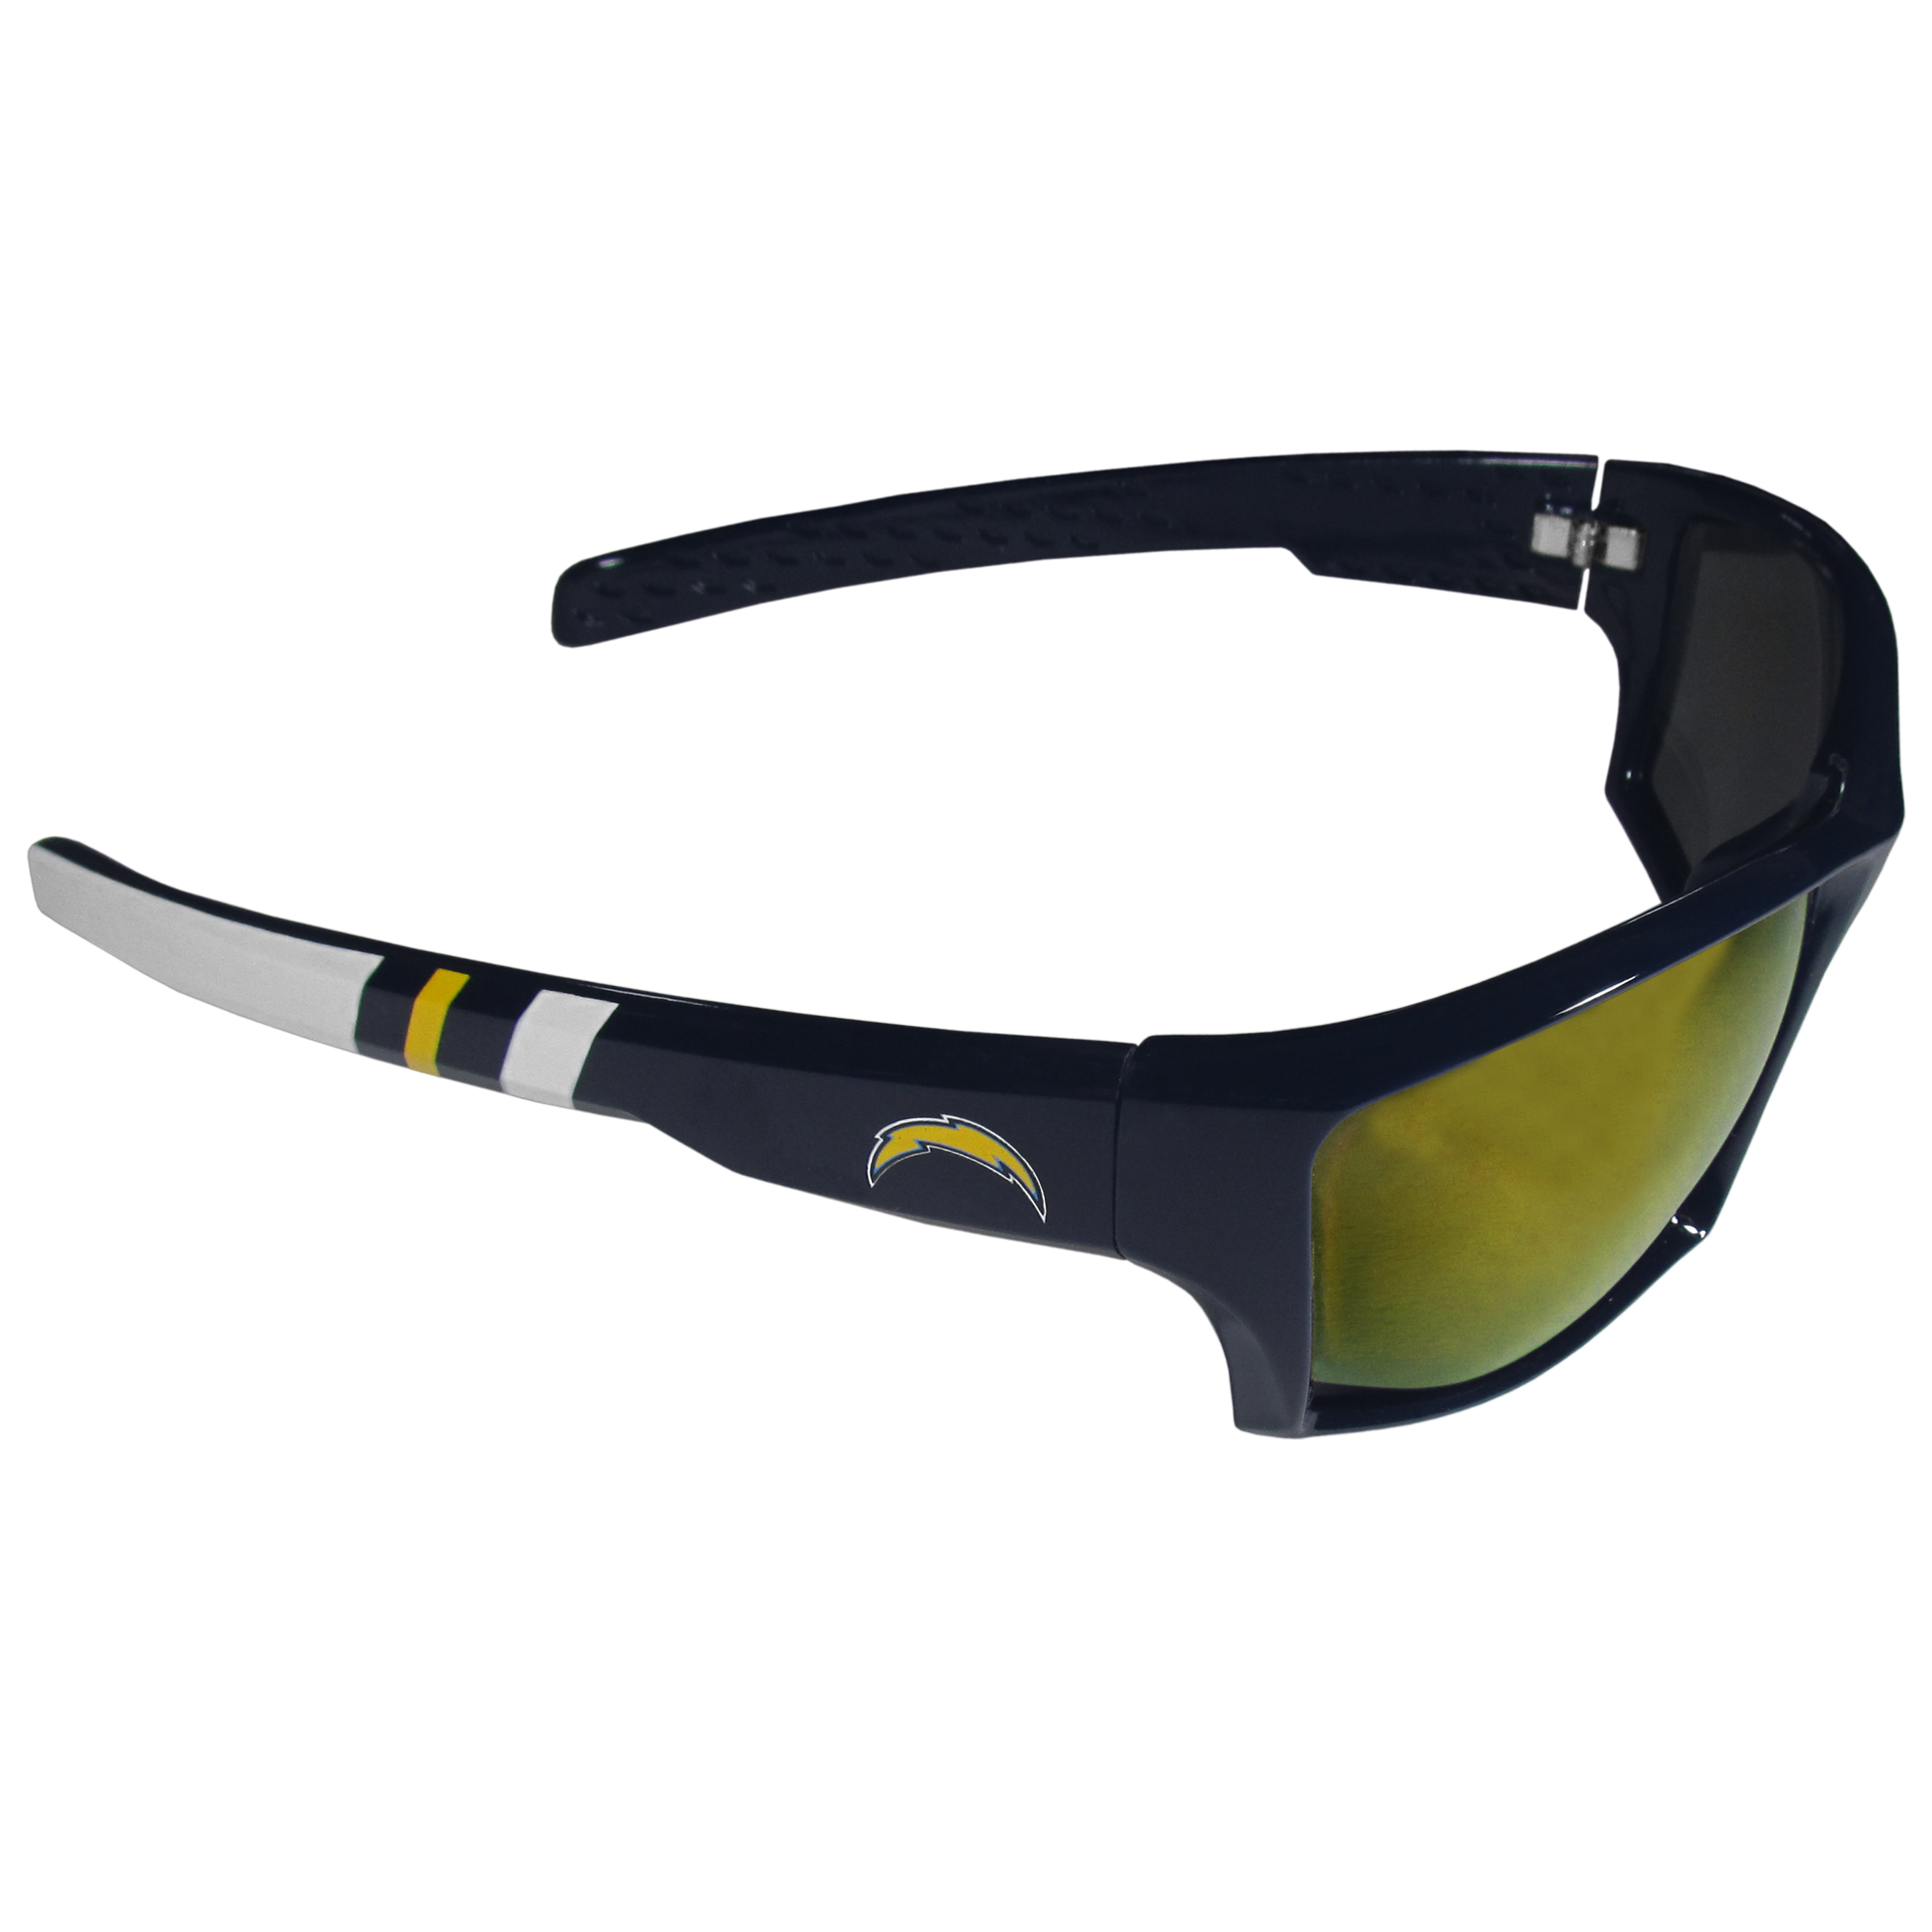 Los Angeles Chargers Edge Wrap Sunglasses - Be an icon of edgy style while you're in the stadium cheering your Los Angeles Chargers to victory with our polarized wrap sunglasses that feature 100% UVA/UVB rating for maximum UV protection. The light-weight frames are built to last with flex hinges for comfort and durability which make them perfect for driving or just lounging by the pool. The colorful rubber grips on the arms of these fashionable sunglasses make them perfect for someone with an active lifestyle. Whether you are hiking, fishing, boating, running on the beach, golfing or playing your favorite sport these designer frames will set you apart. Our edge wrap sunglasses are true quality eyewear at an affordable price. The wrap style frames come with team colored stripes and team logos so you can show off your die-hard team pride while protecting your eyes from those bright sun rays.